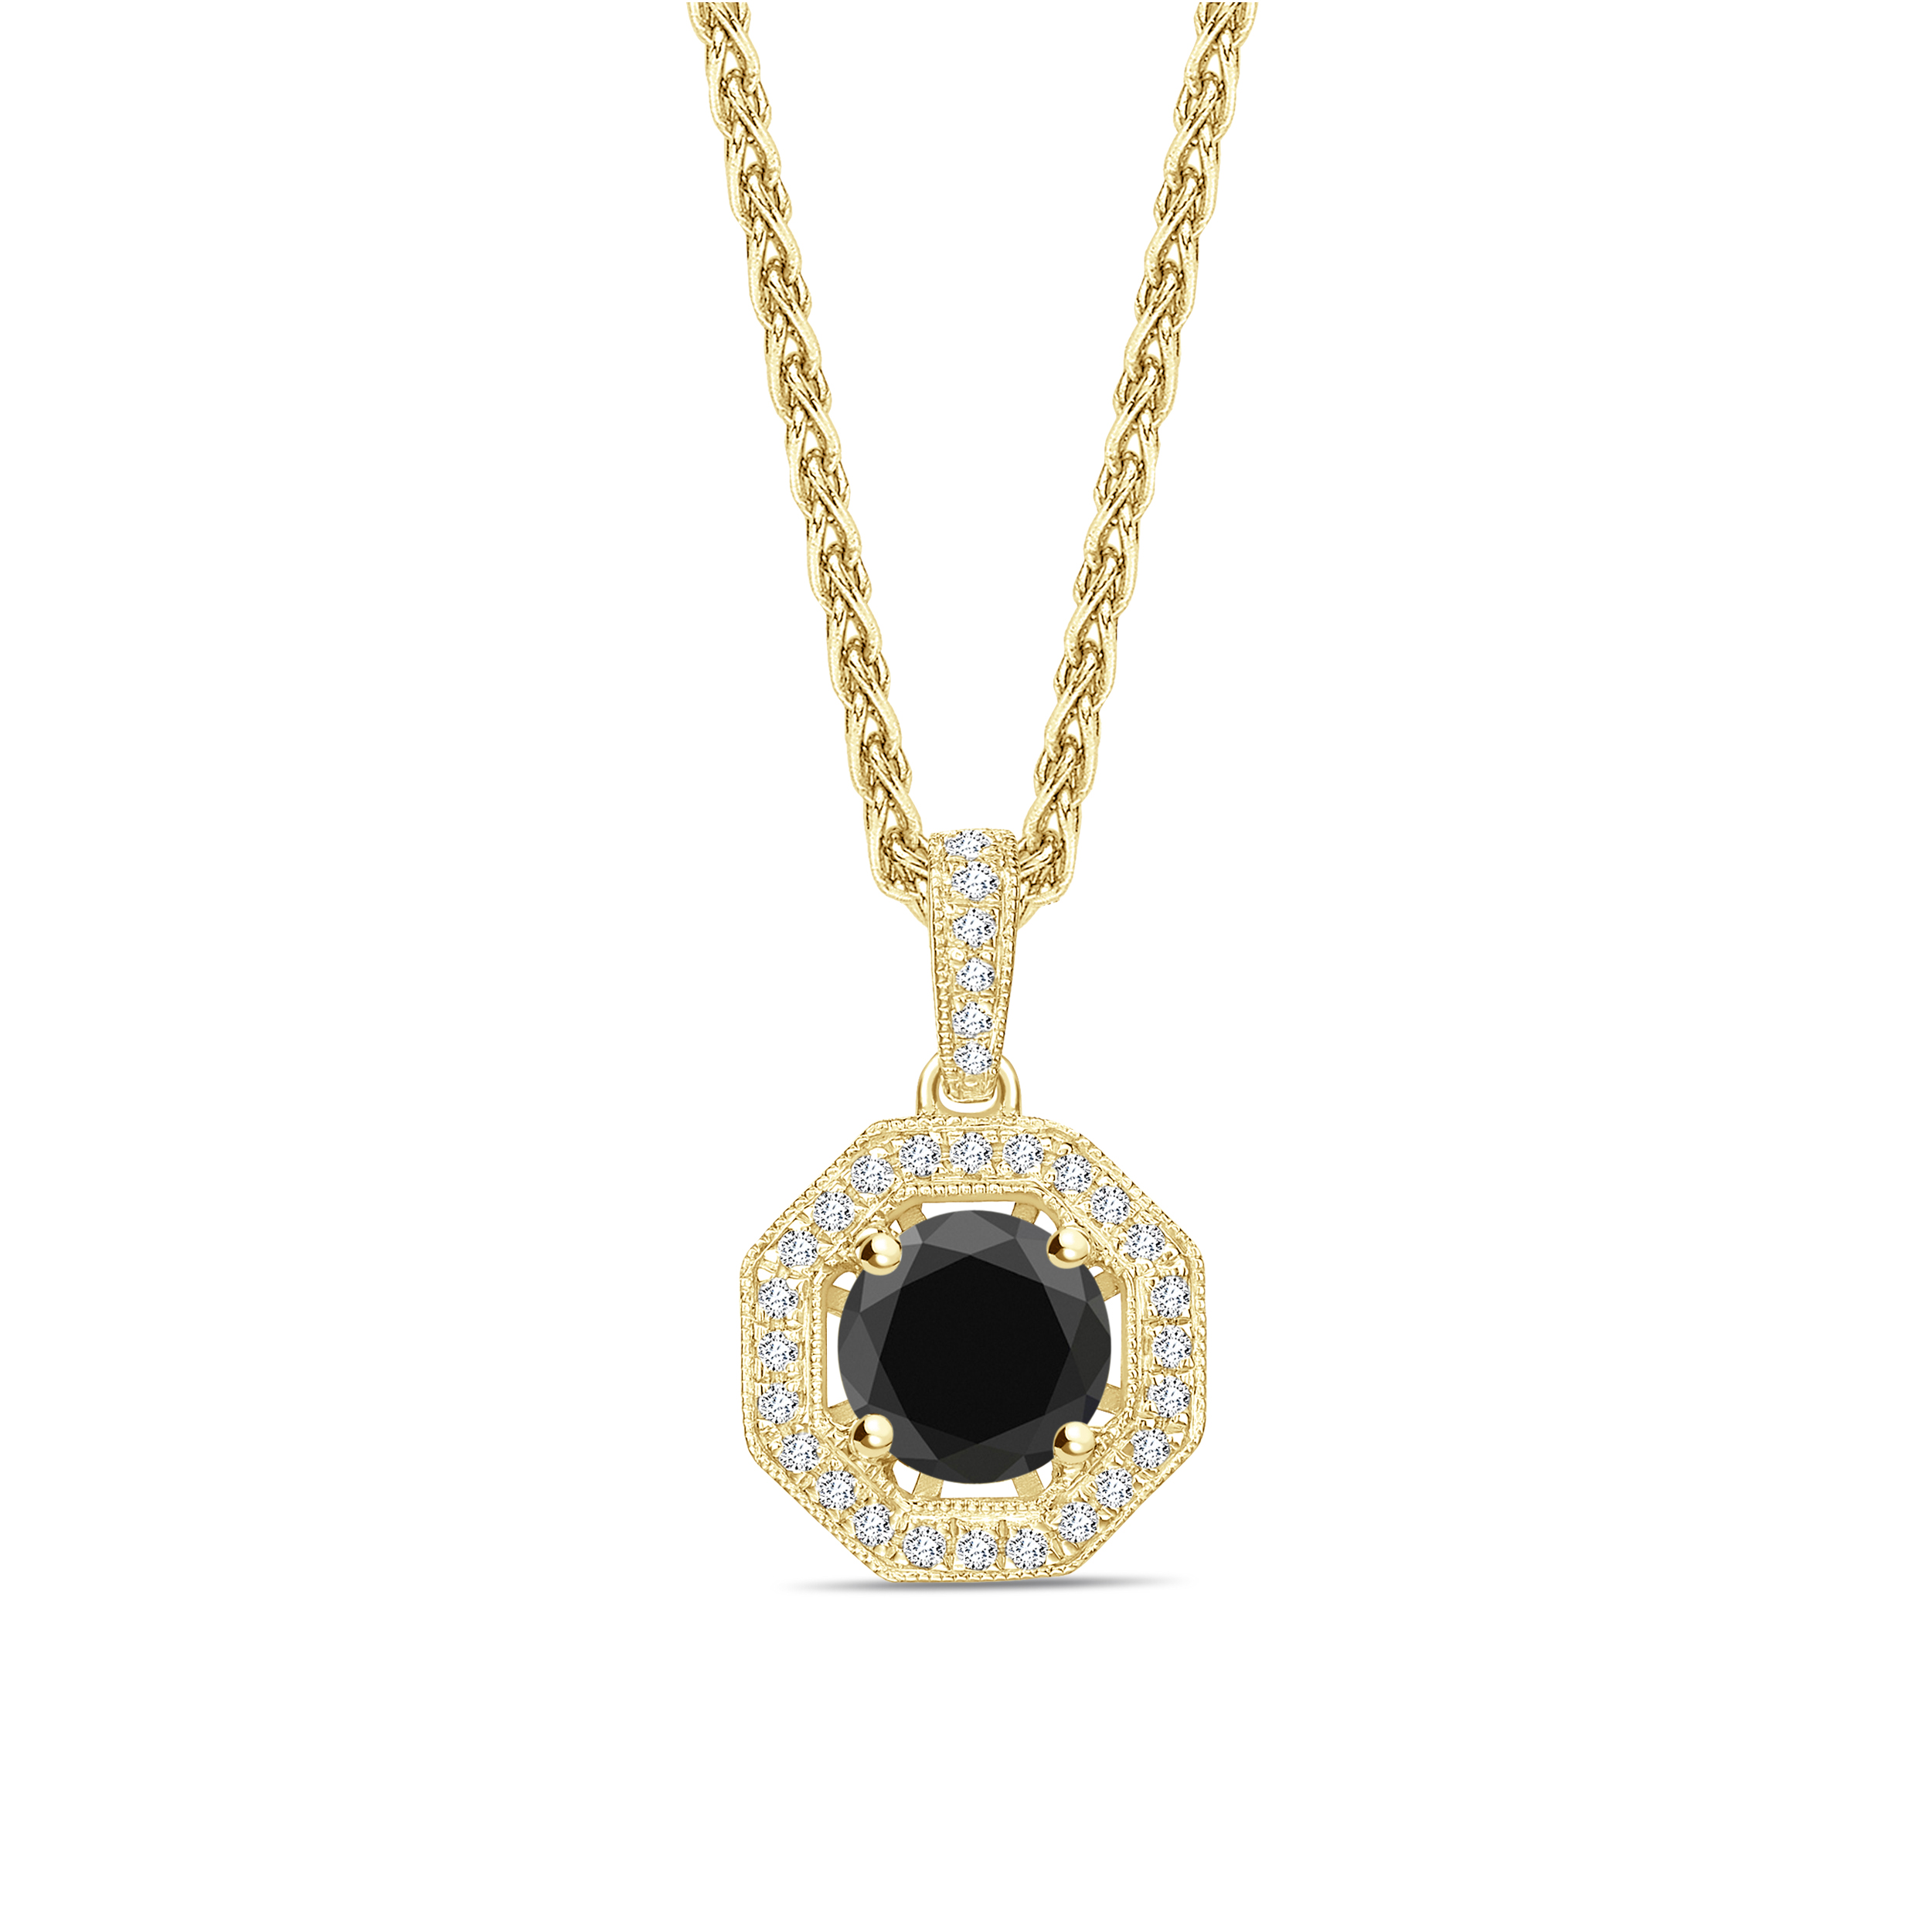 Halo Style Round Cut Black Diamond Solitaire Pendants Necklace